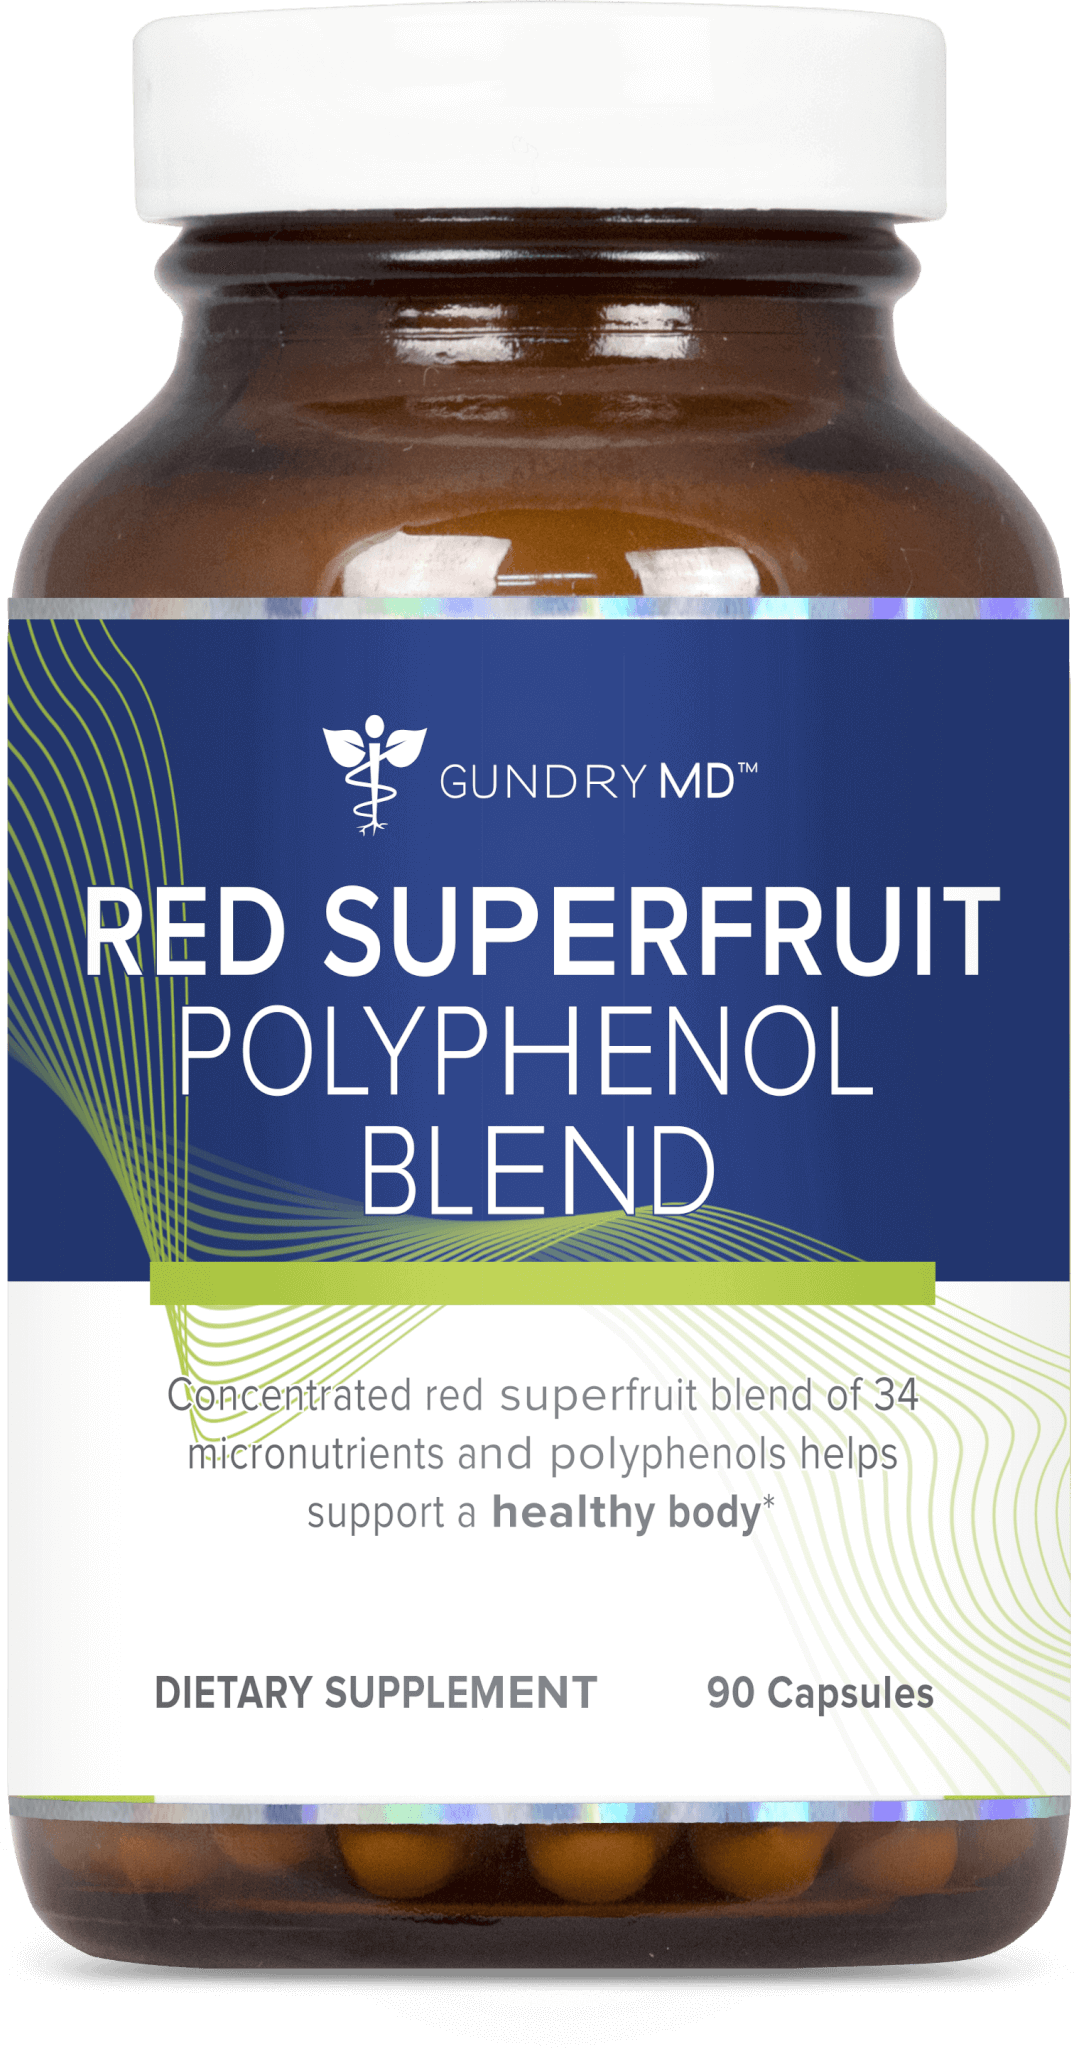 Red Superfruit Polyphenol Blend